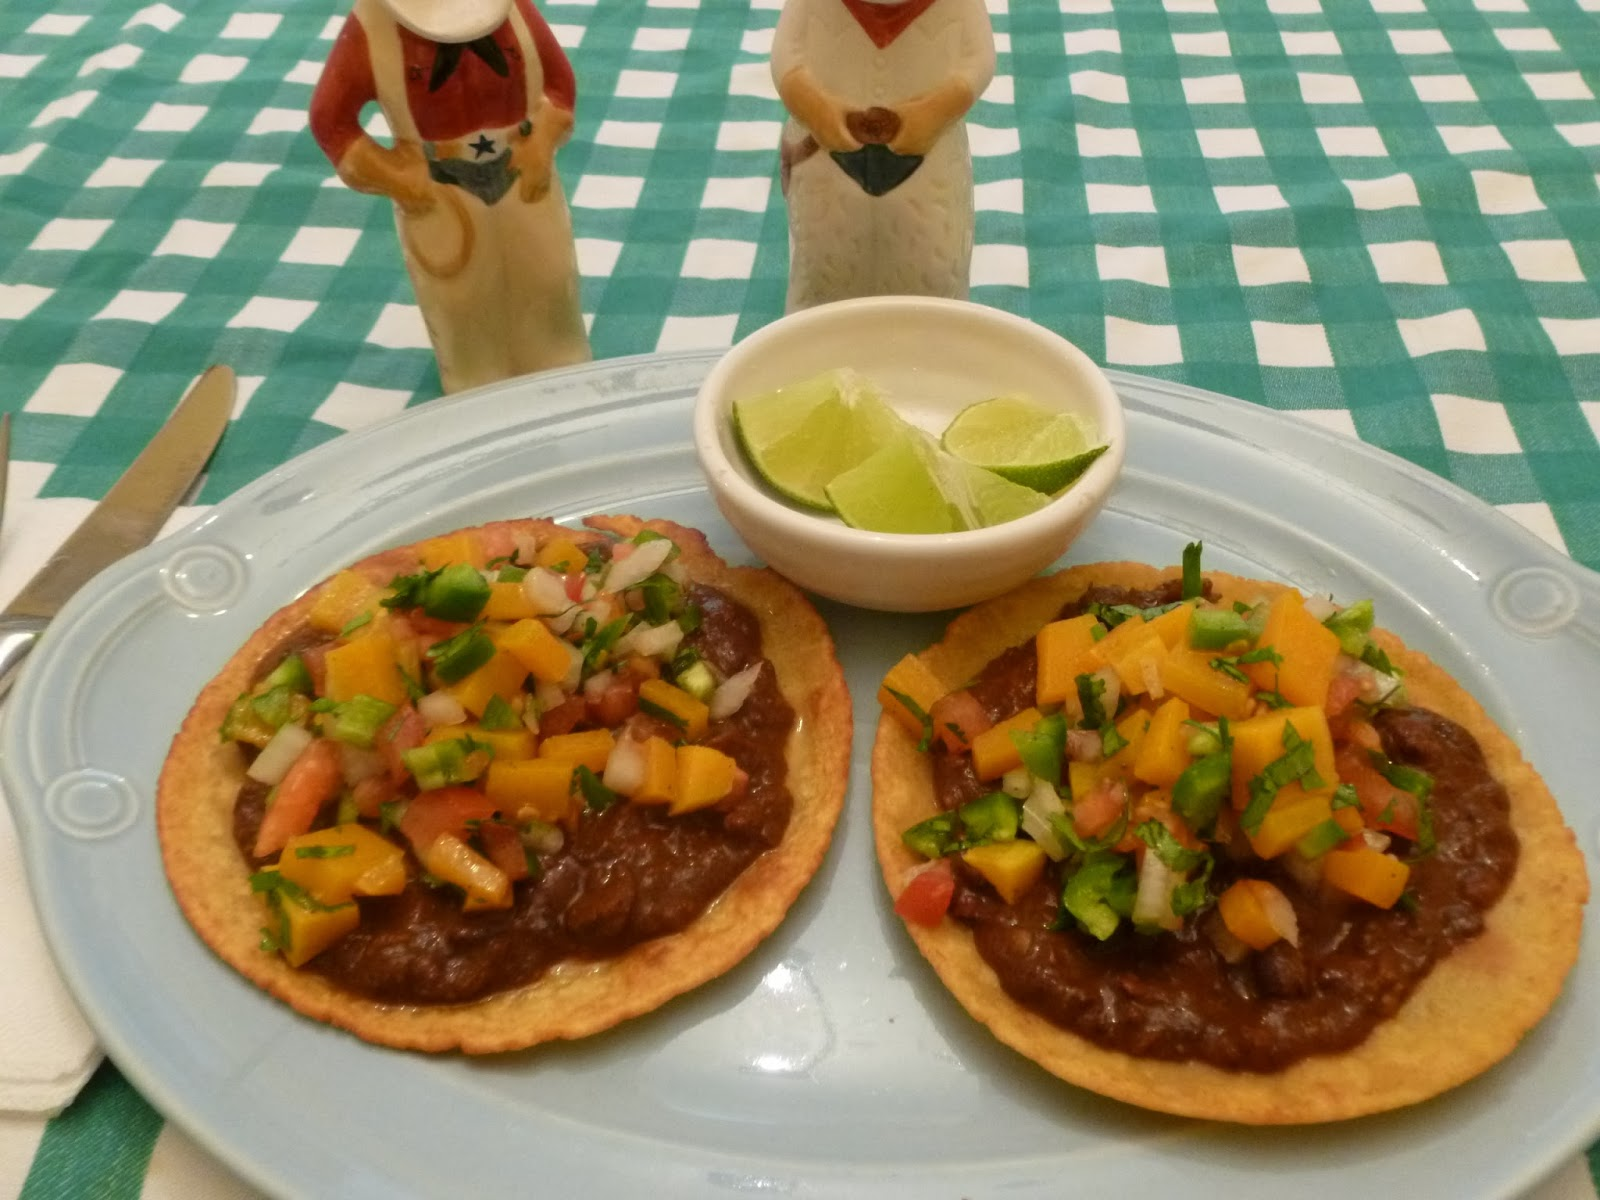 ... Sauces: Mole Black Bean Tostadas with Butternut Squash Pico de Gallo